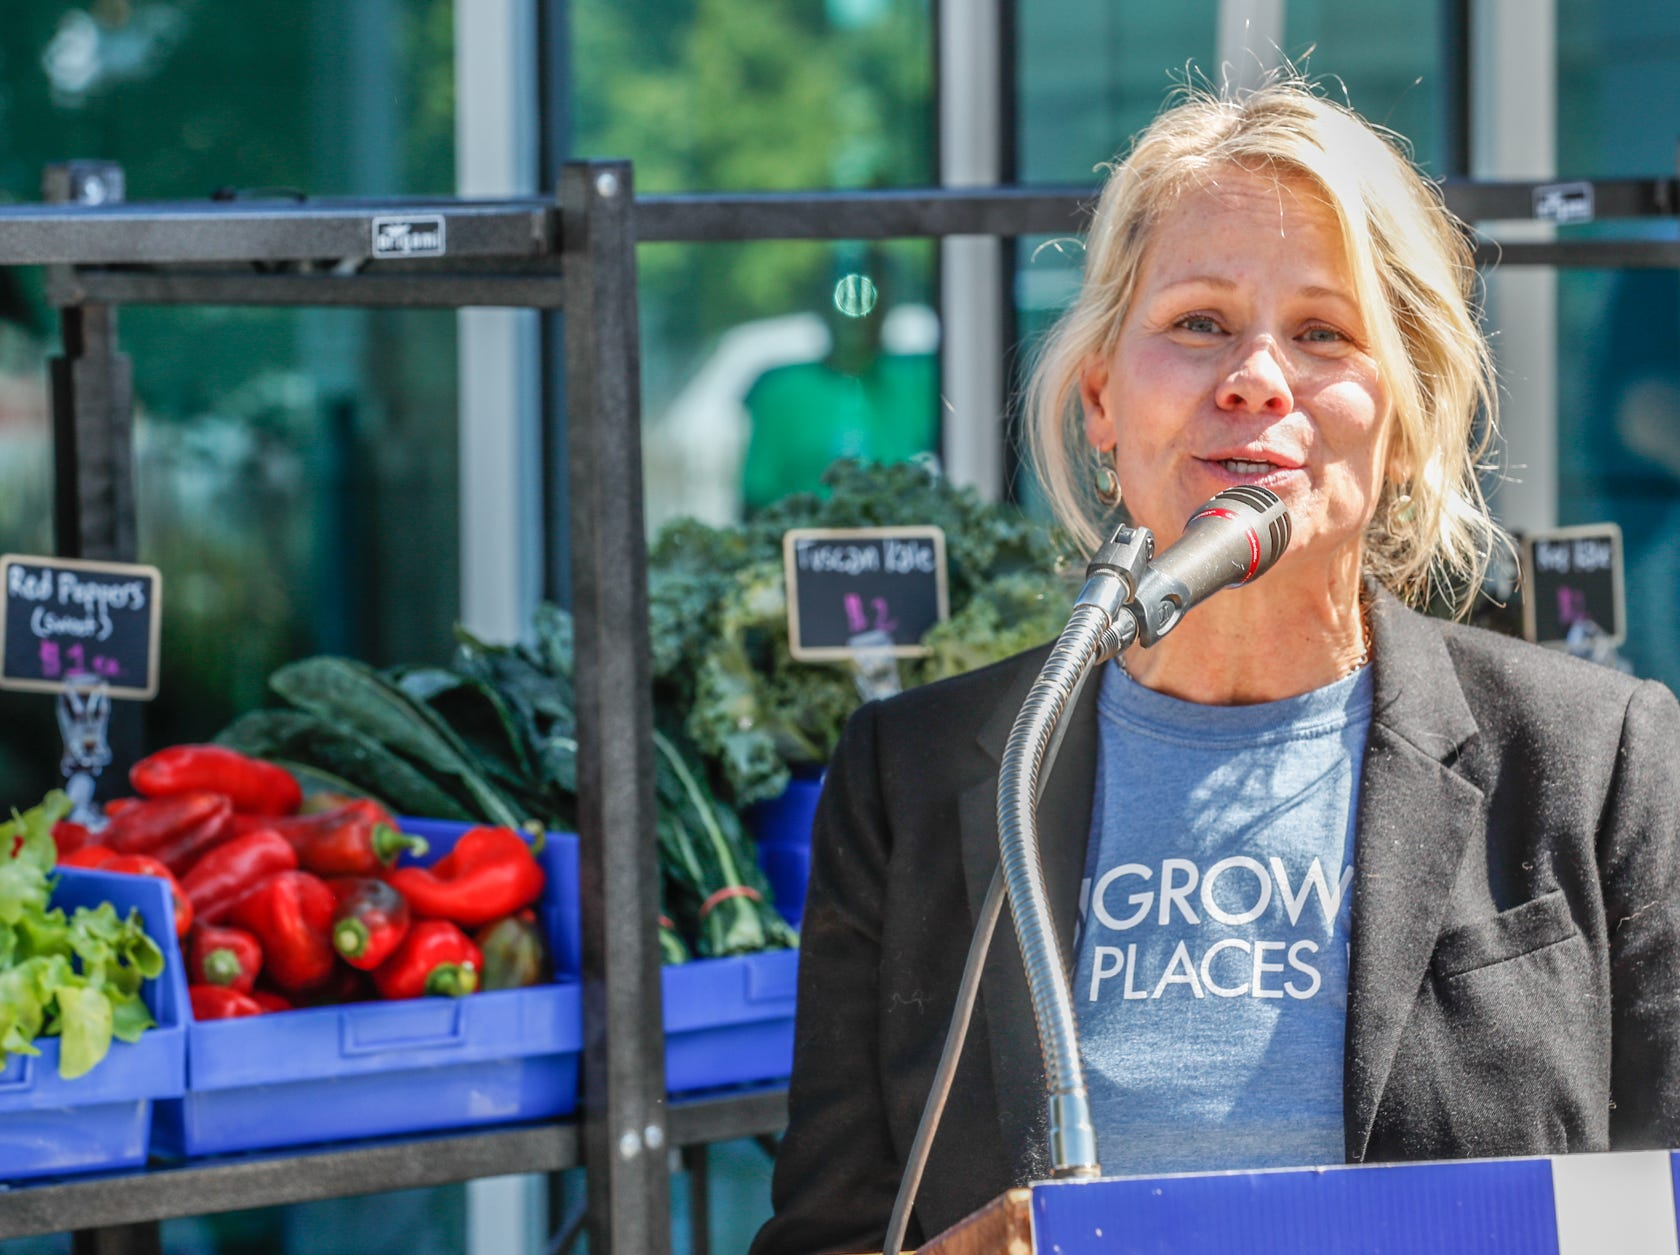 Linda Cook, executive director of Growing Places Indy, gives remarks  during the launch of the ÒFood in TransitÓ program at the Julia M. Carson Transit Center on Friday, Sept. 14, 2018. Visitors to the Transit Center can purchase produce every Friday from 3 p.m. to 6 p.m. through October 26.